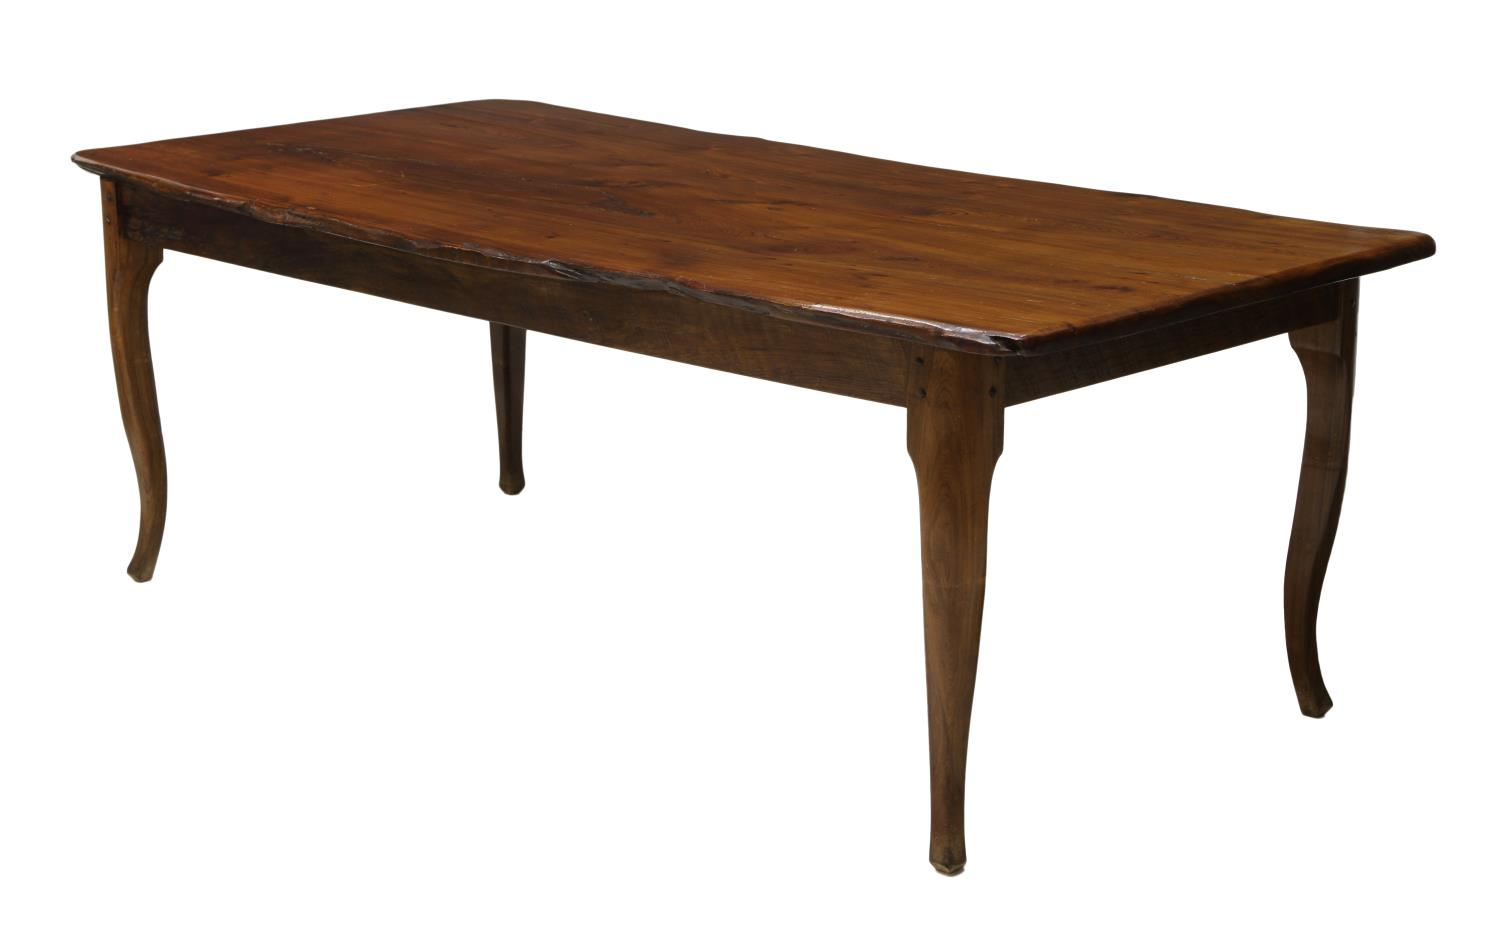 RUSTIC PINE PLANK TOP DINING TABLE SPECIAL ITALIAN MID  : 997 from www.austinauction.com size 1500 x 930 jpeg 56kB